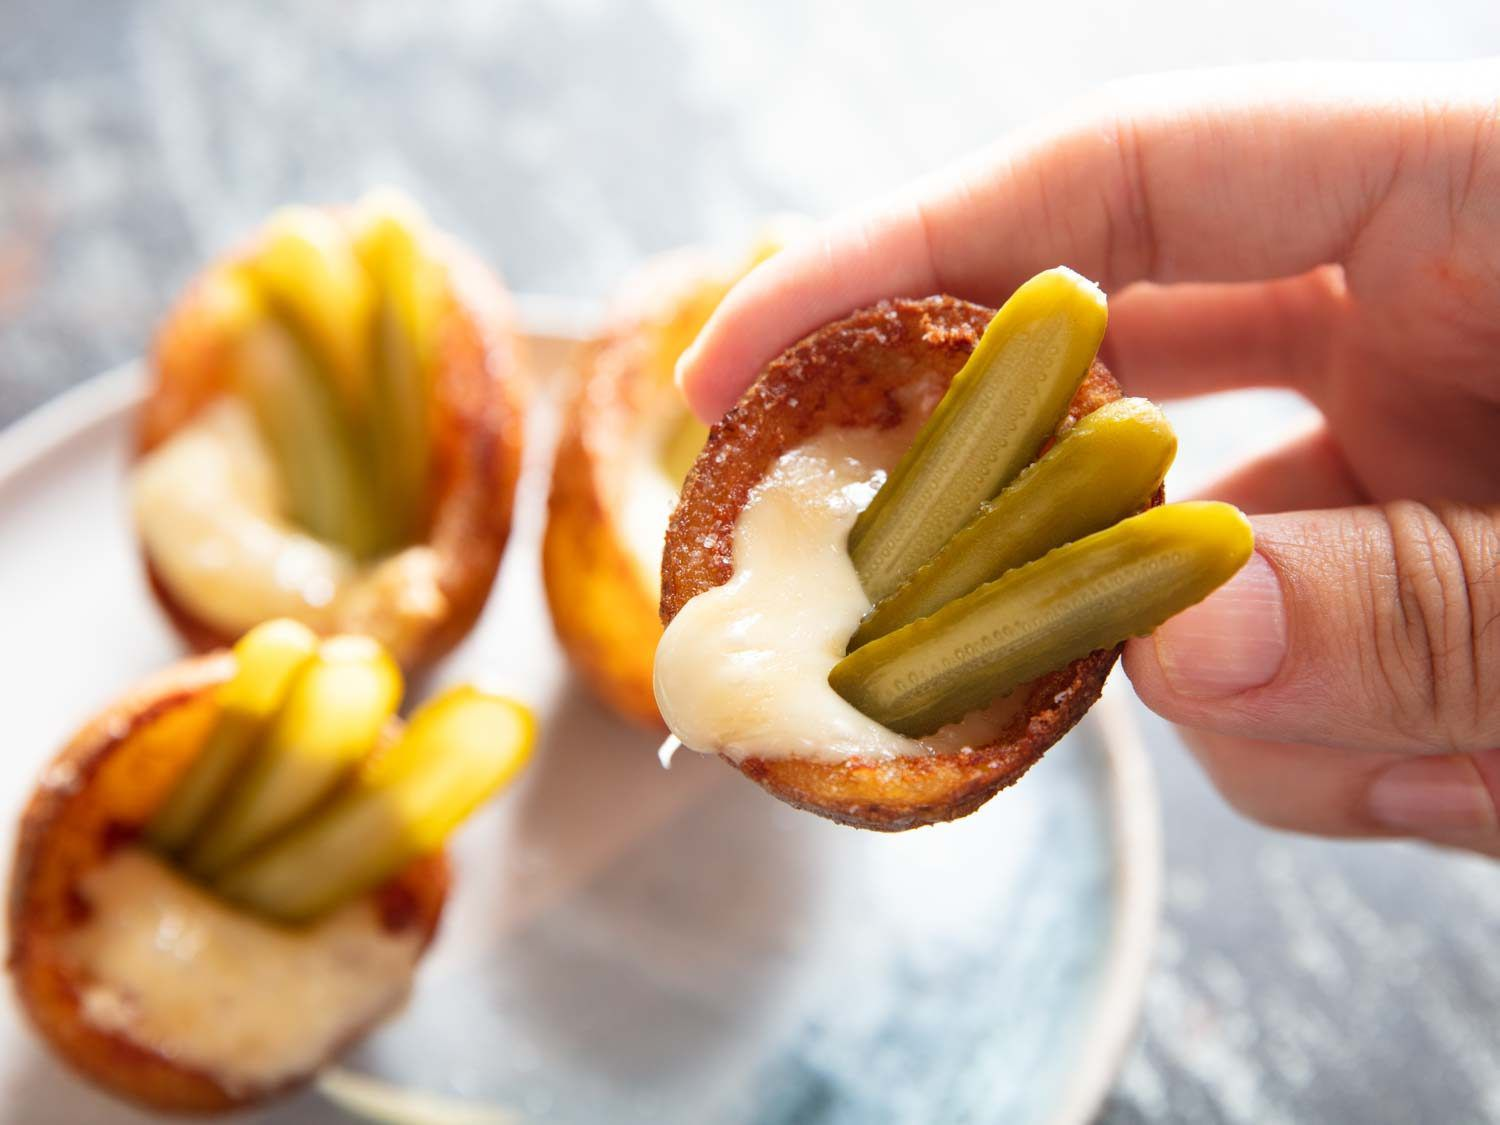 Deep-fried potato skin cups filled with melted raclette cheese ad thinly sliced gherkins.